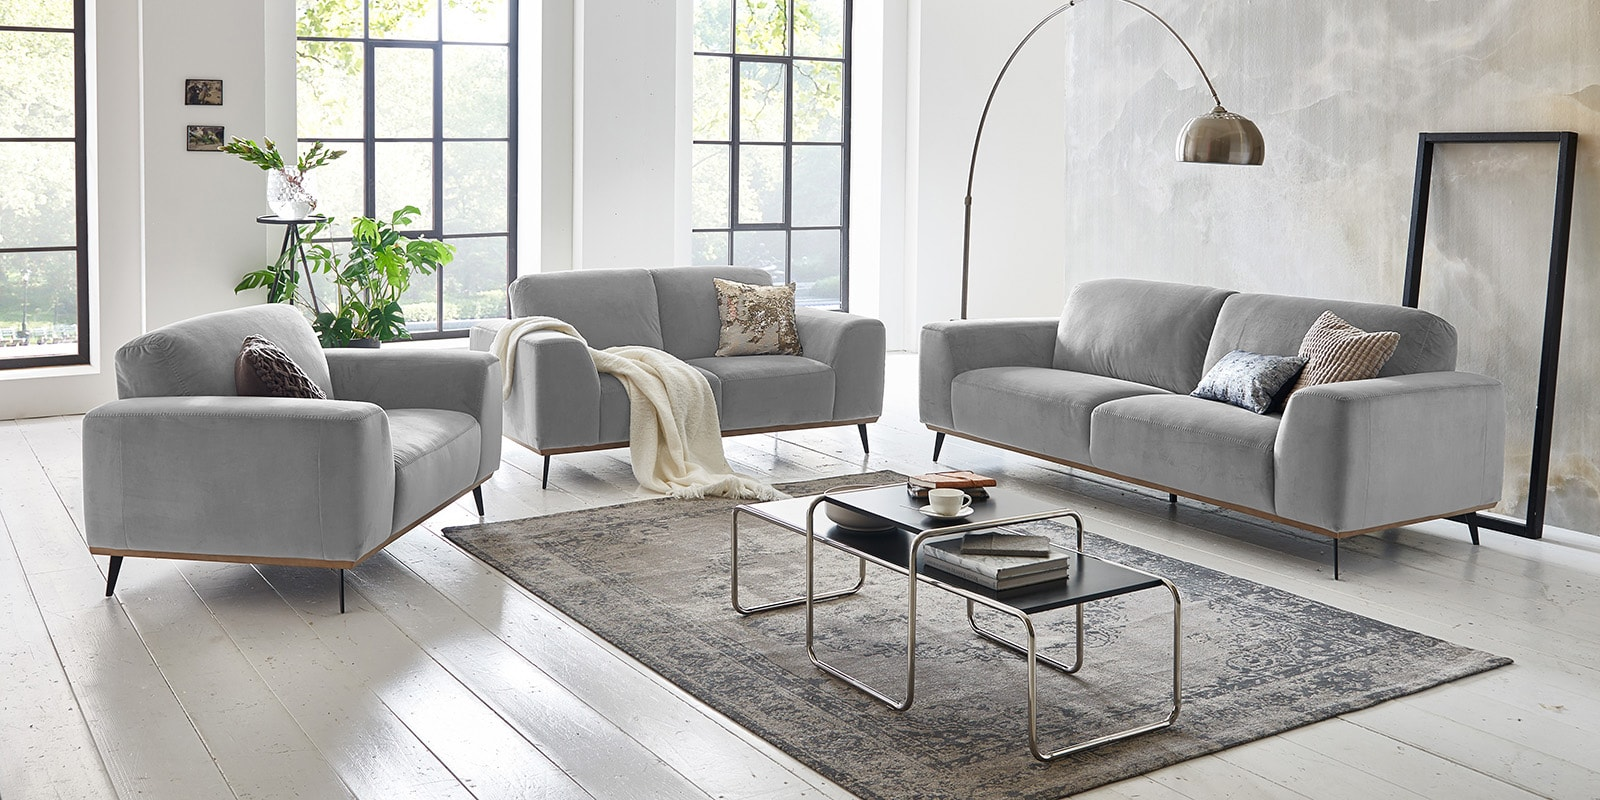 3-Sitzer Couch Samt Barcelona